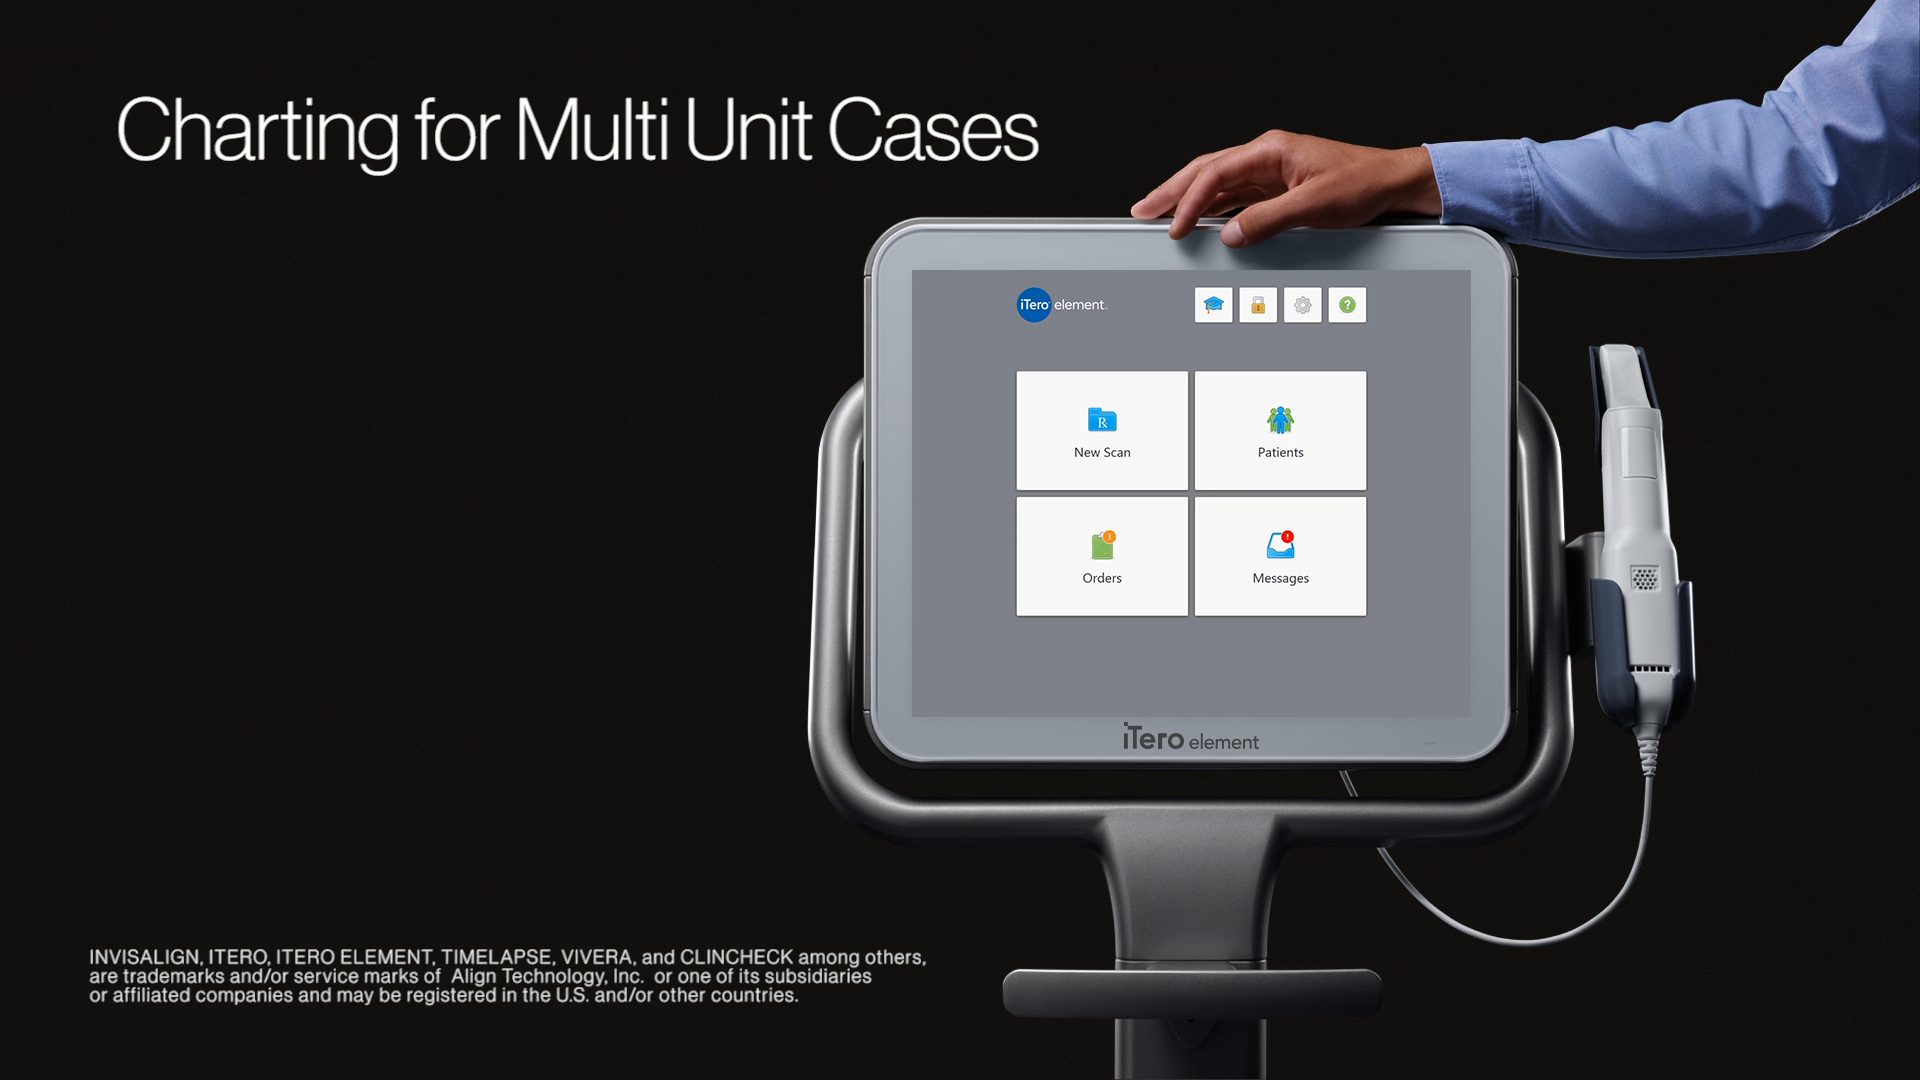 1:22 minutes:  Charting for Multi-Unit Cases